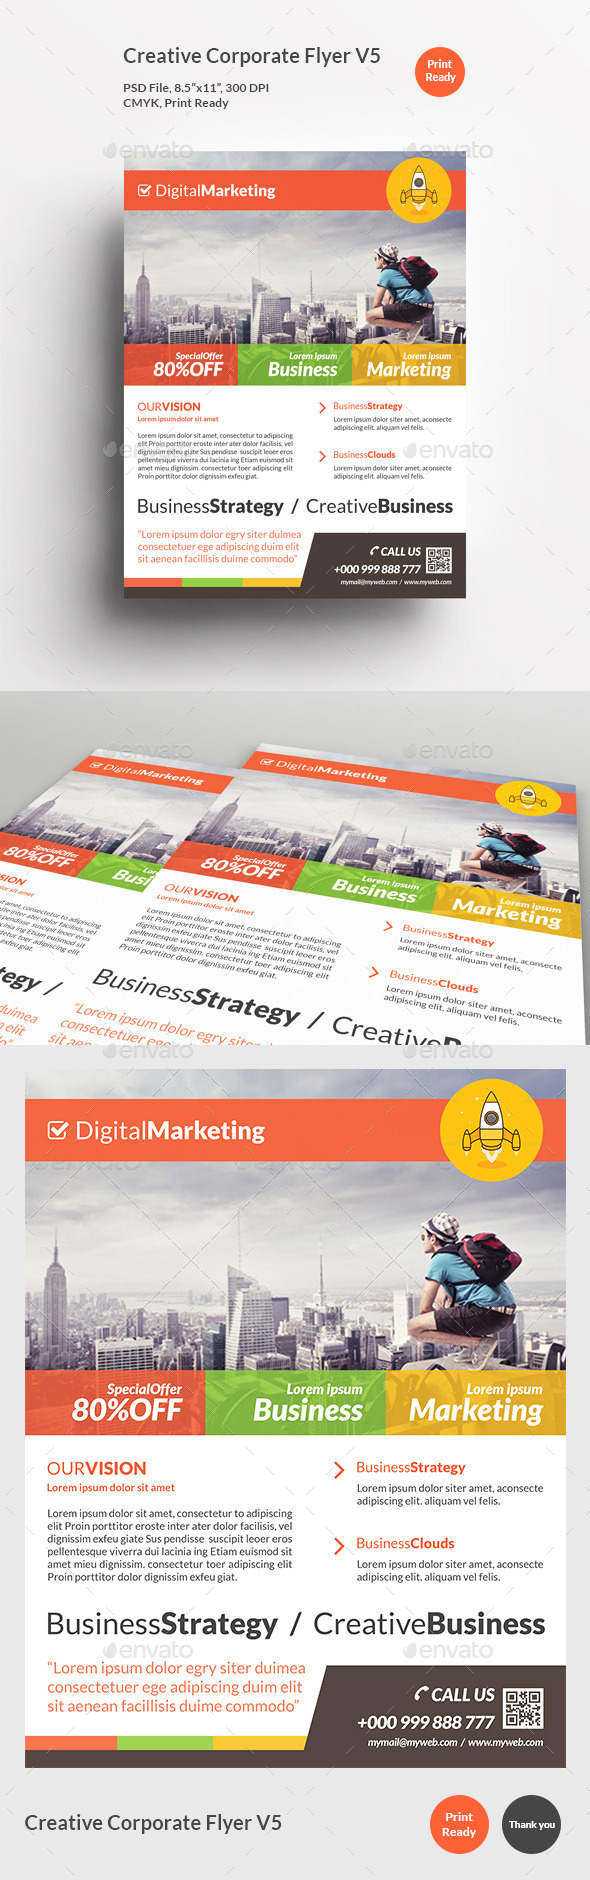 GraphicRiver Creative Corporate Flyer V5 11865621